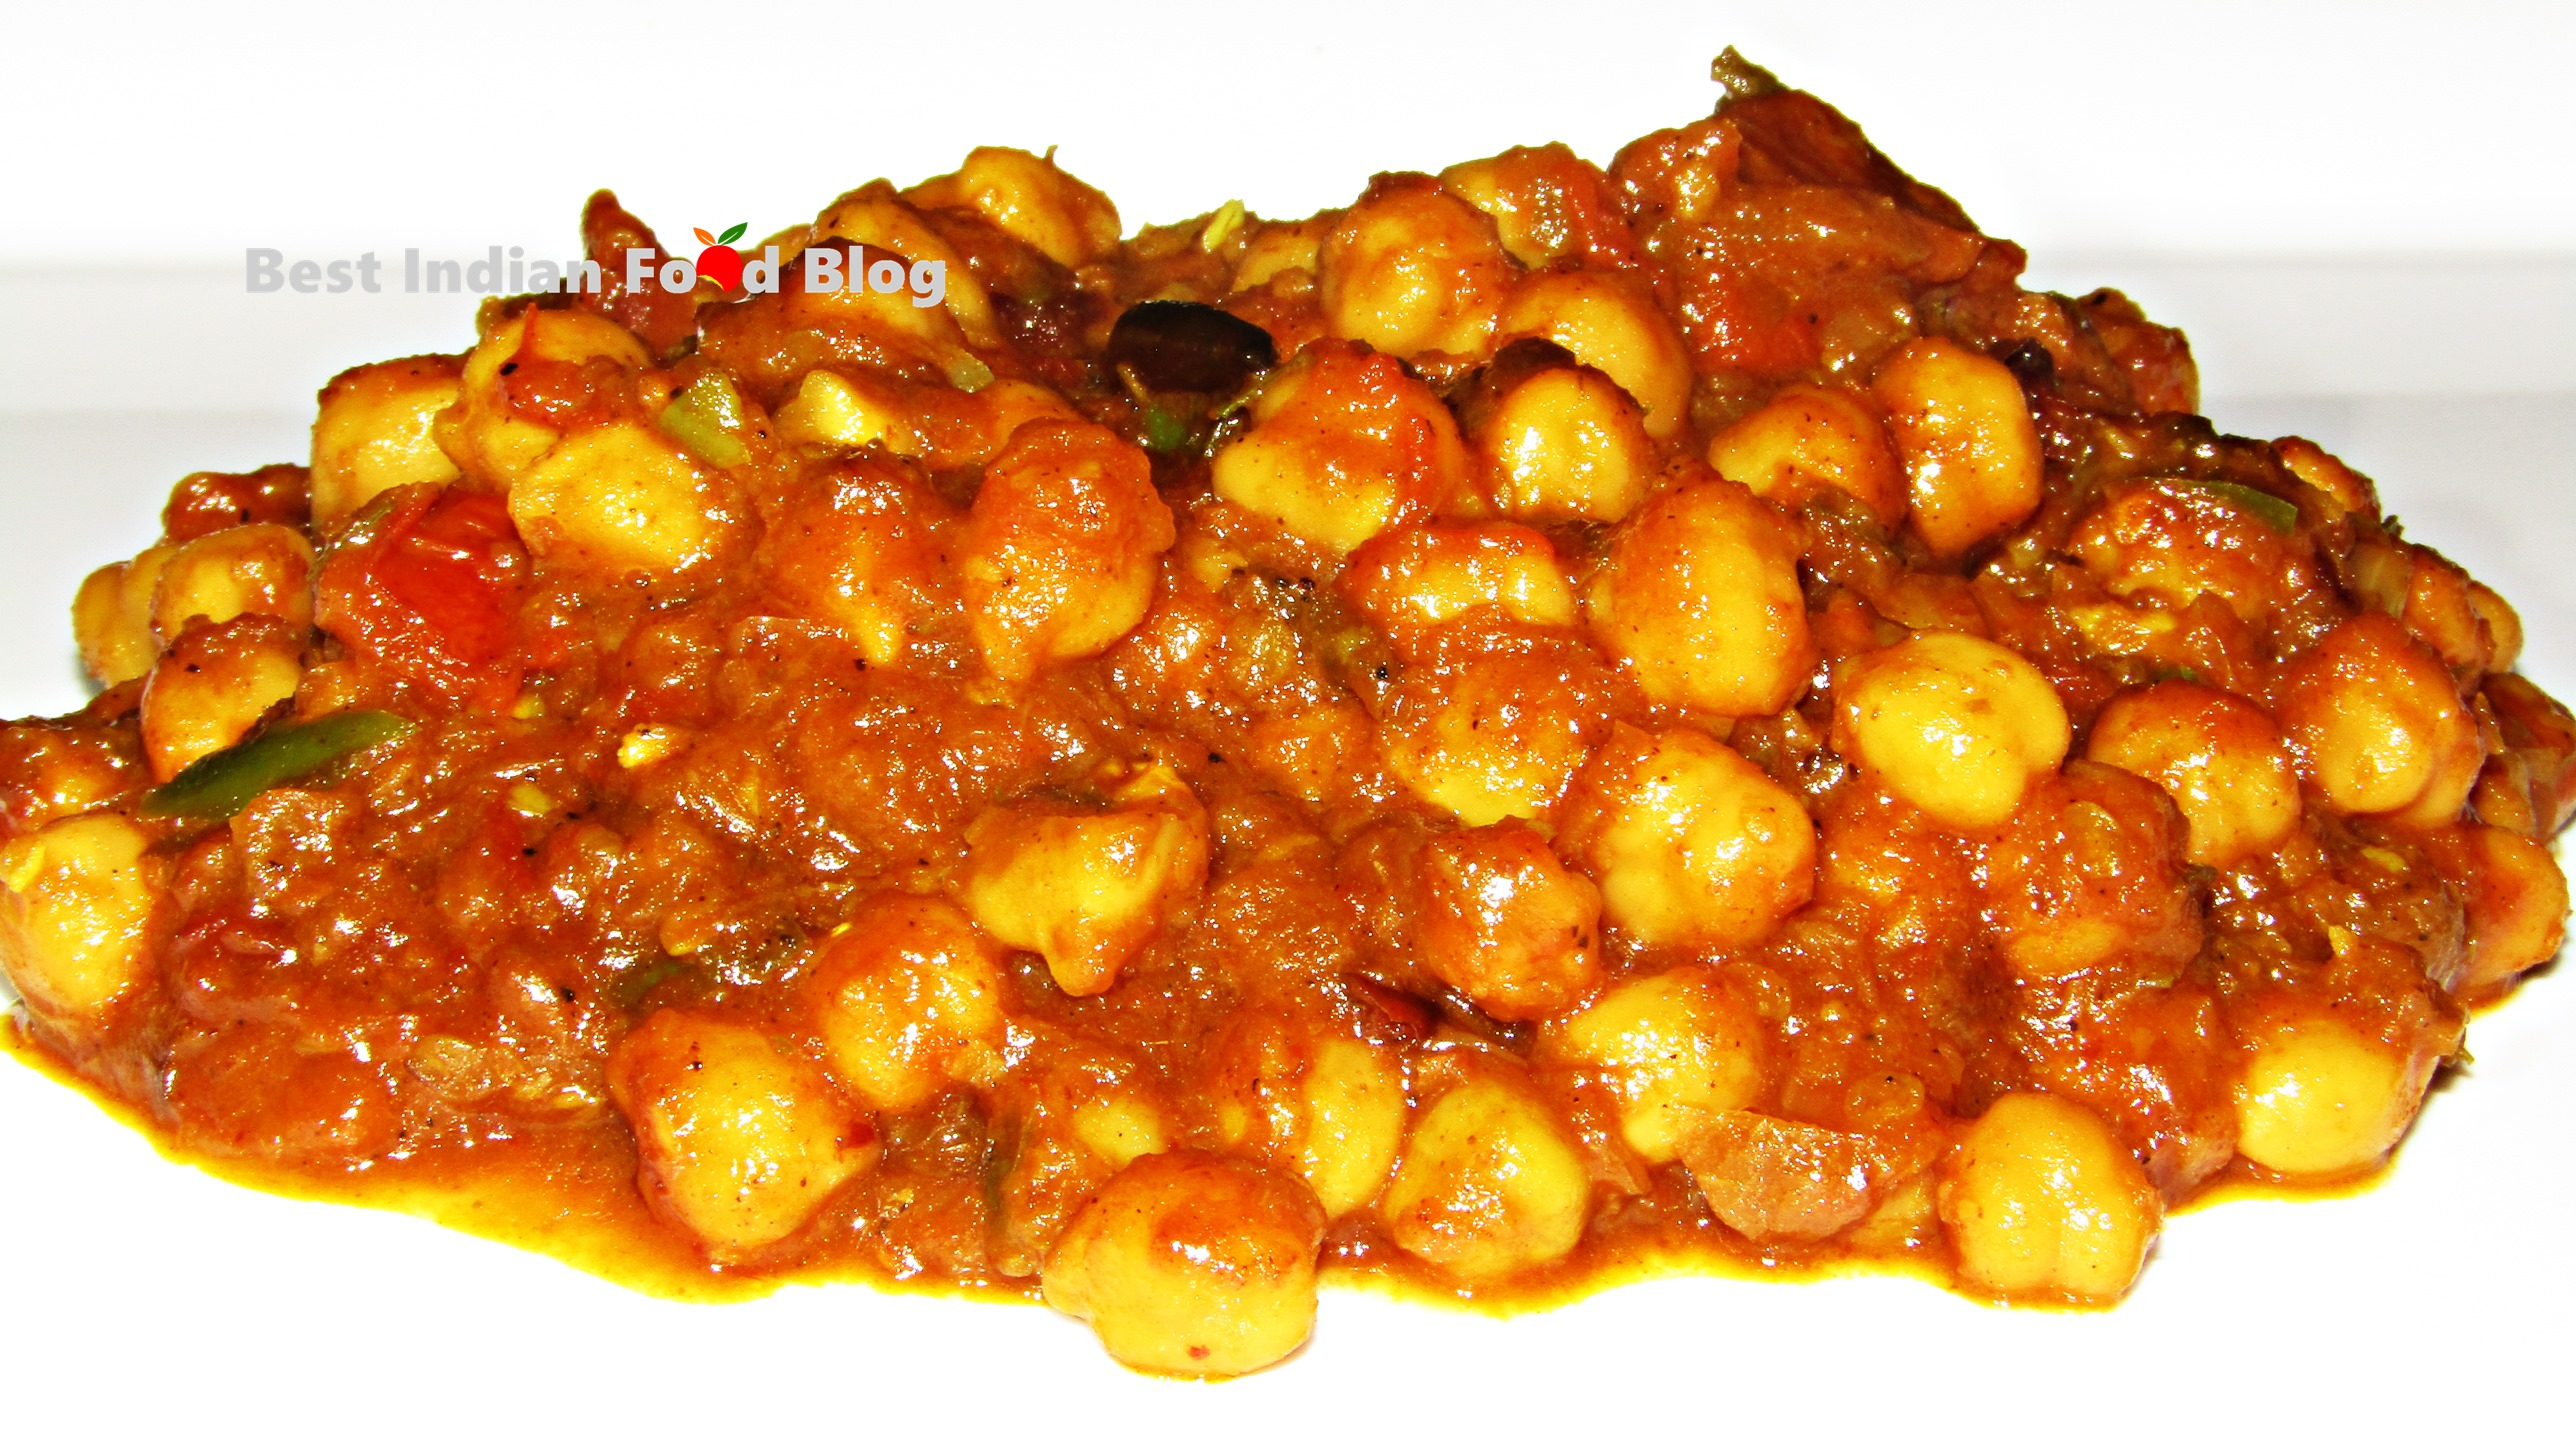 Chole from Chandigarh, India | Best Indian Food Blog | Chickpea recipe